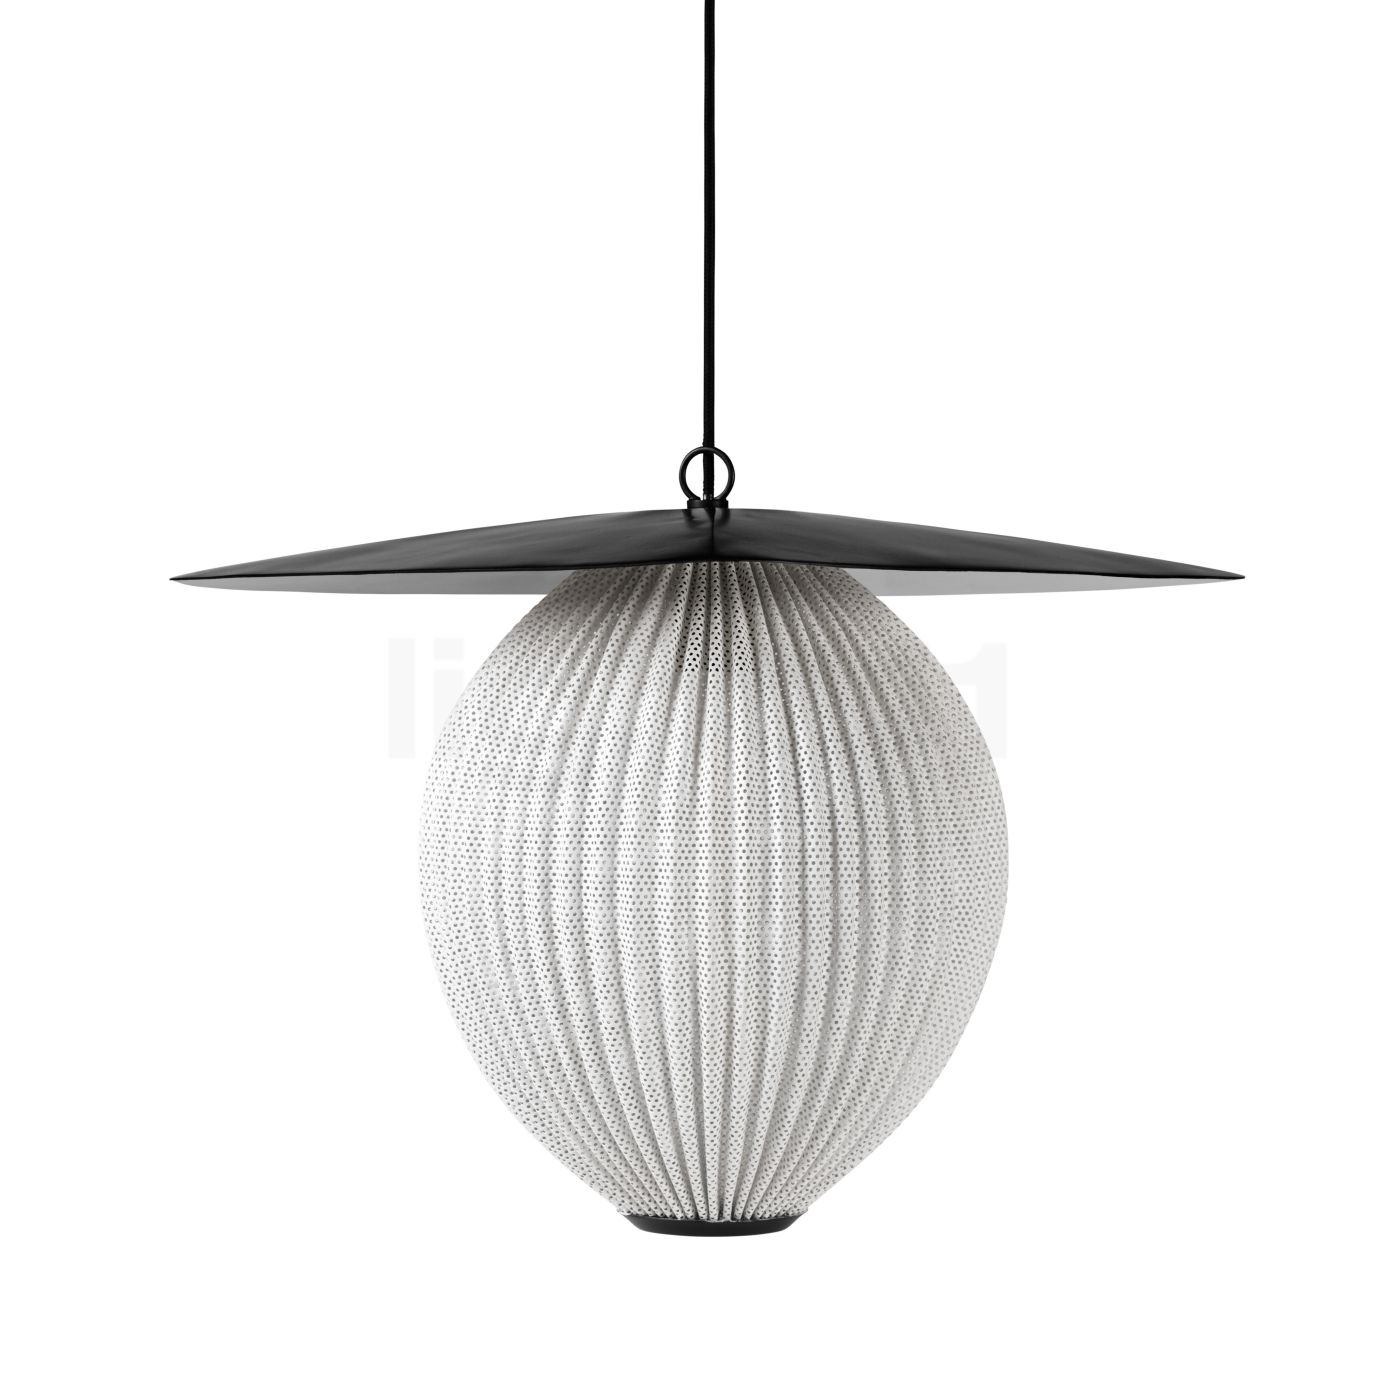 Gubi Satellite Pendant light Dining table lamps